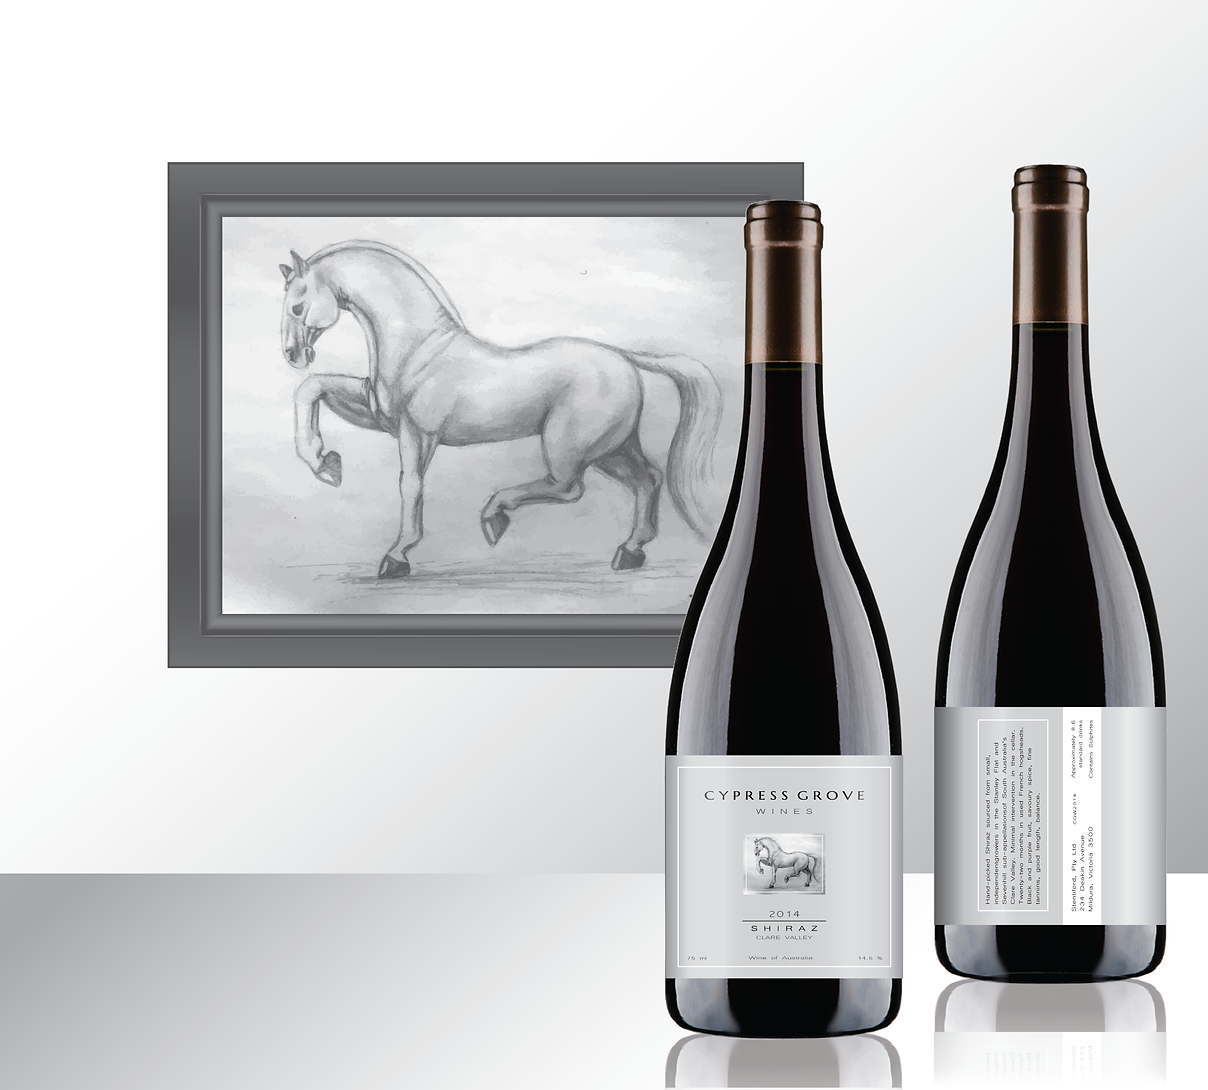 Cypress-Grove-Wine-Profile-60.png